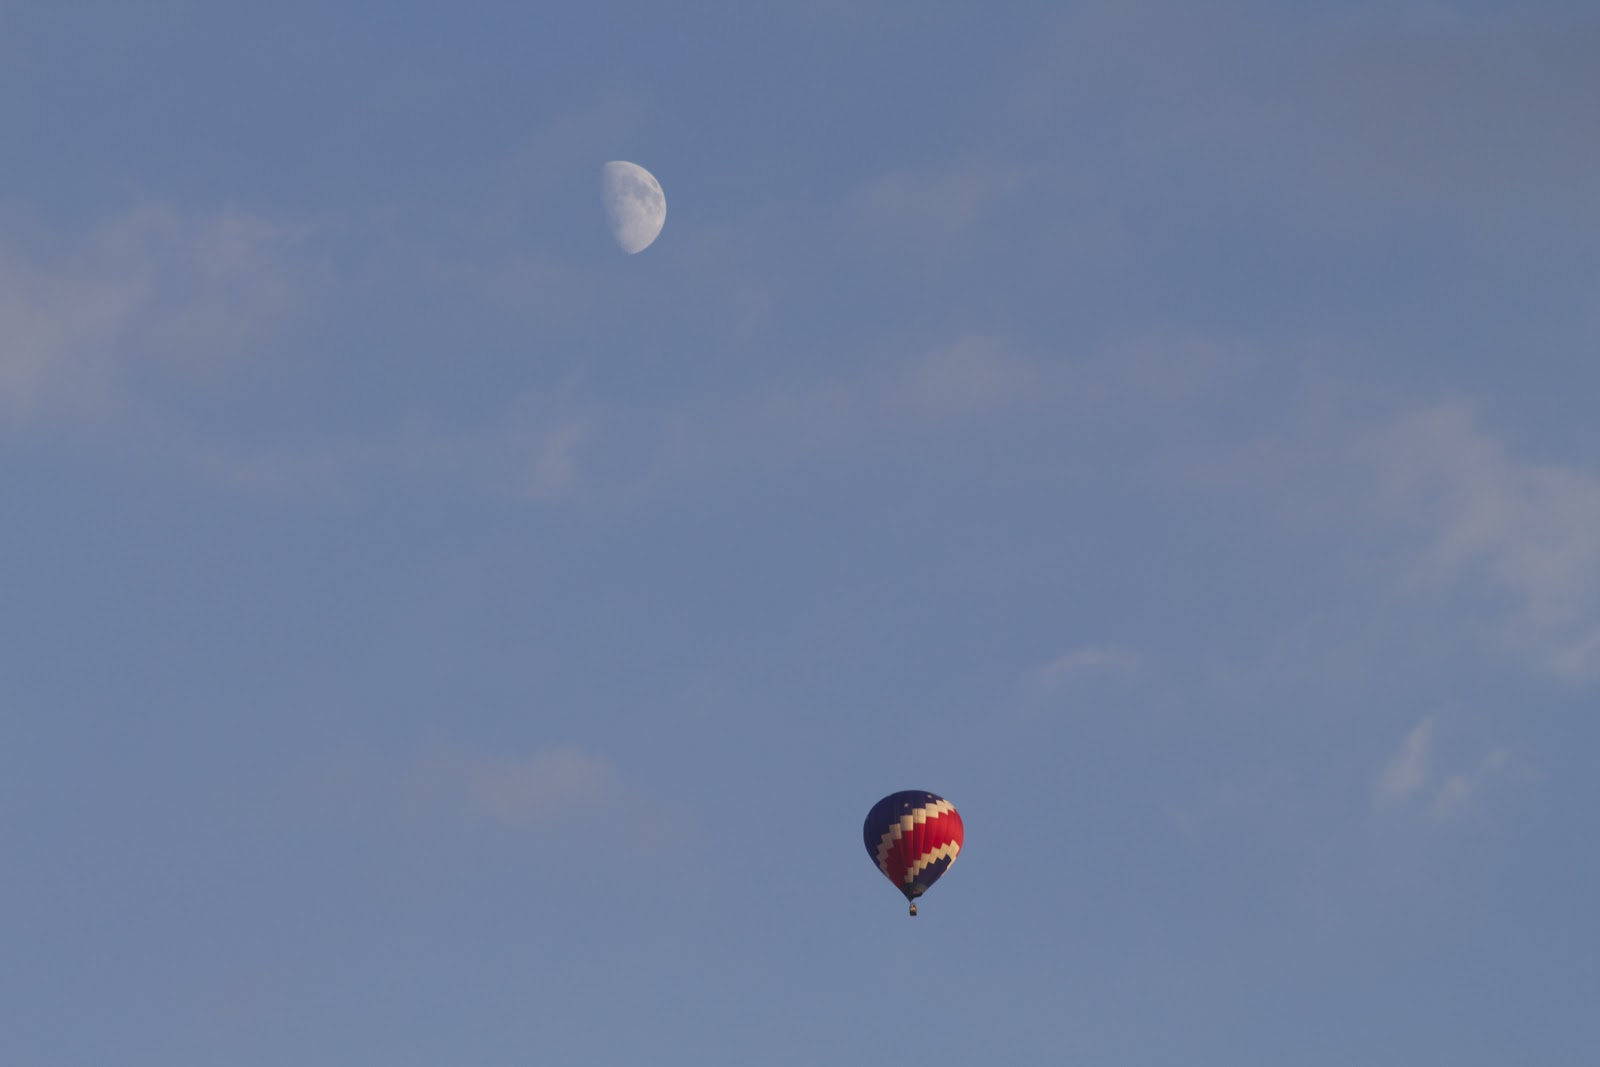 moon and hot air balloon